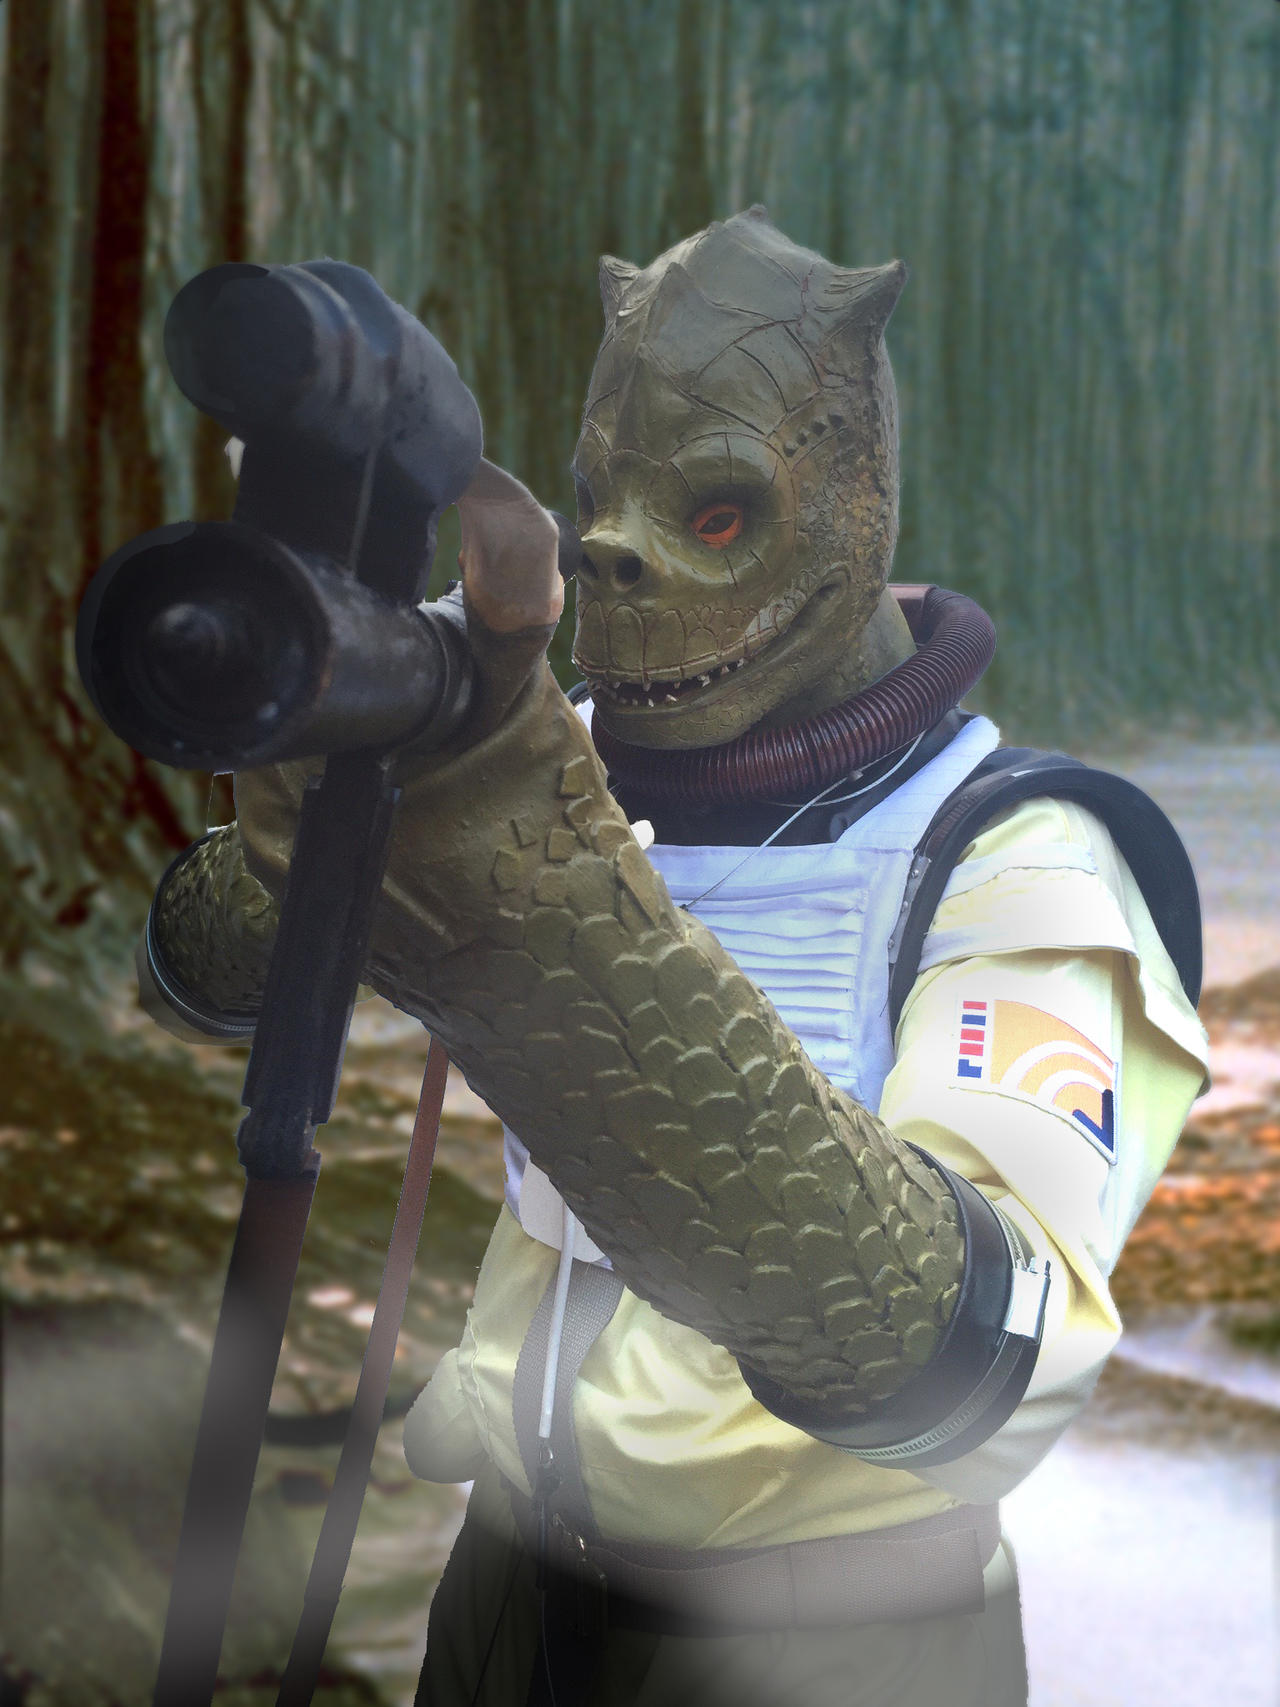 Bossk Costume In The Woods By Stew750 On Deviantart